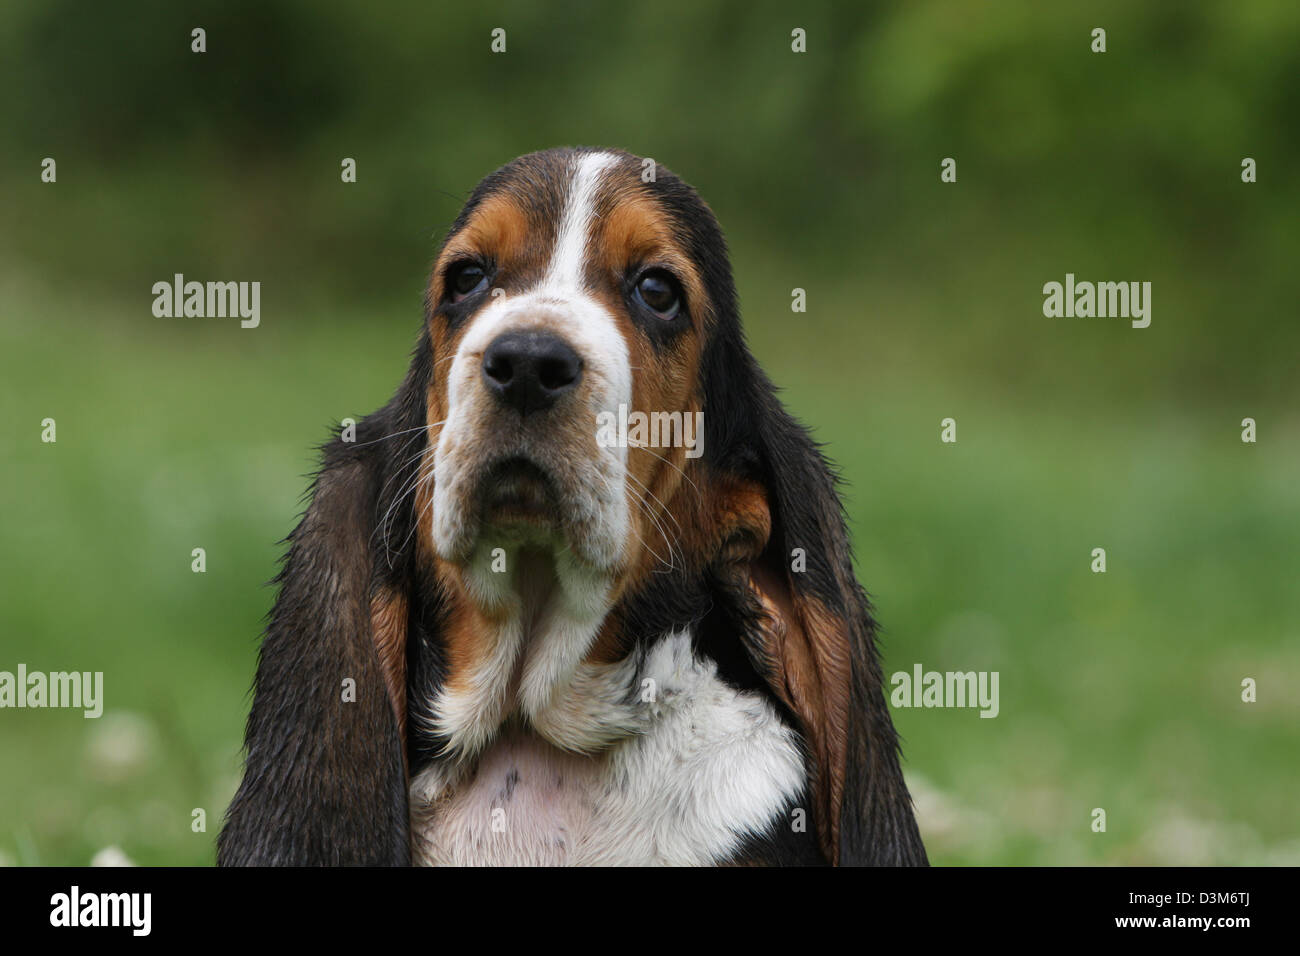 Hush Puppy Dogs Stock Photos Hush Puppy Dogs Stock Images Alamy